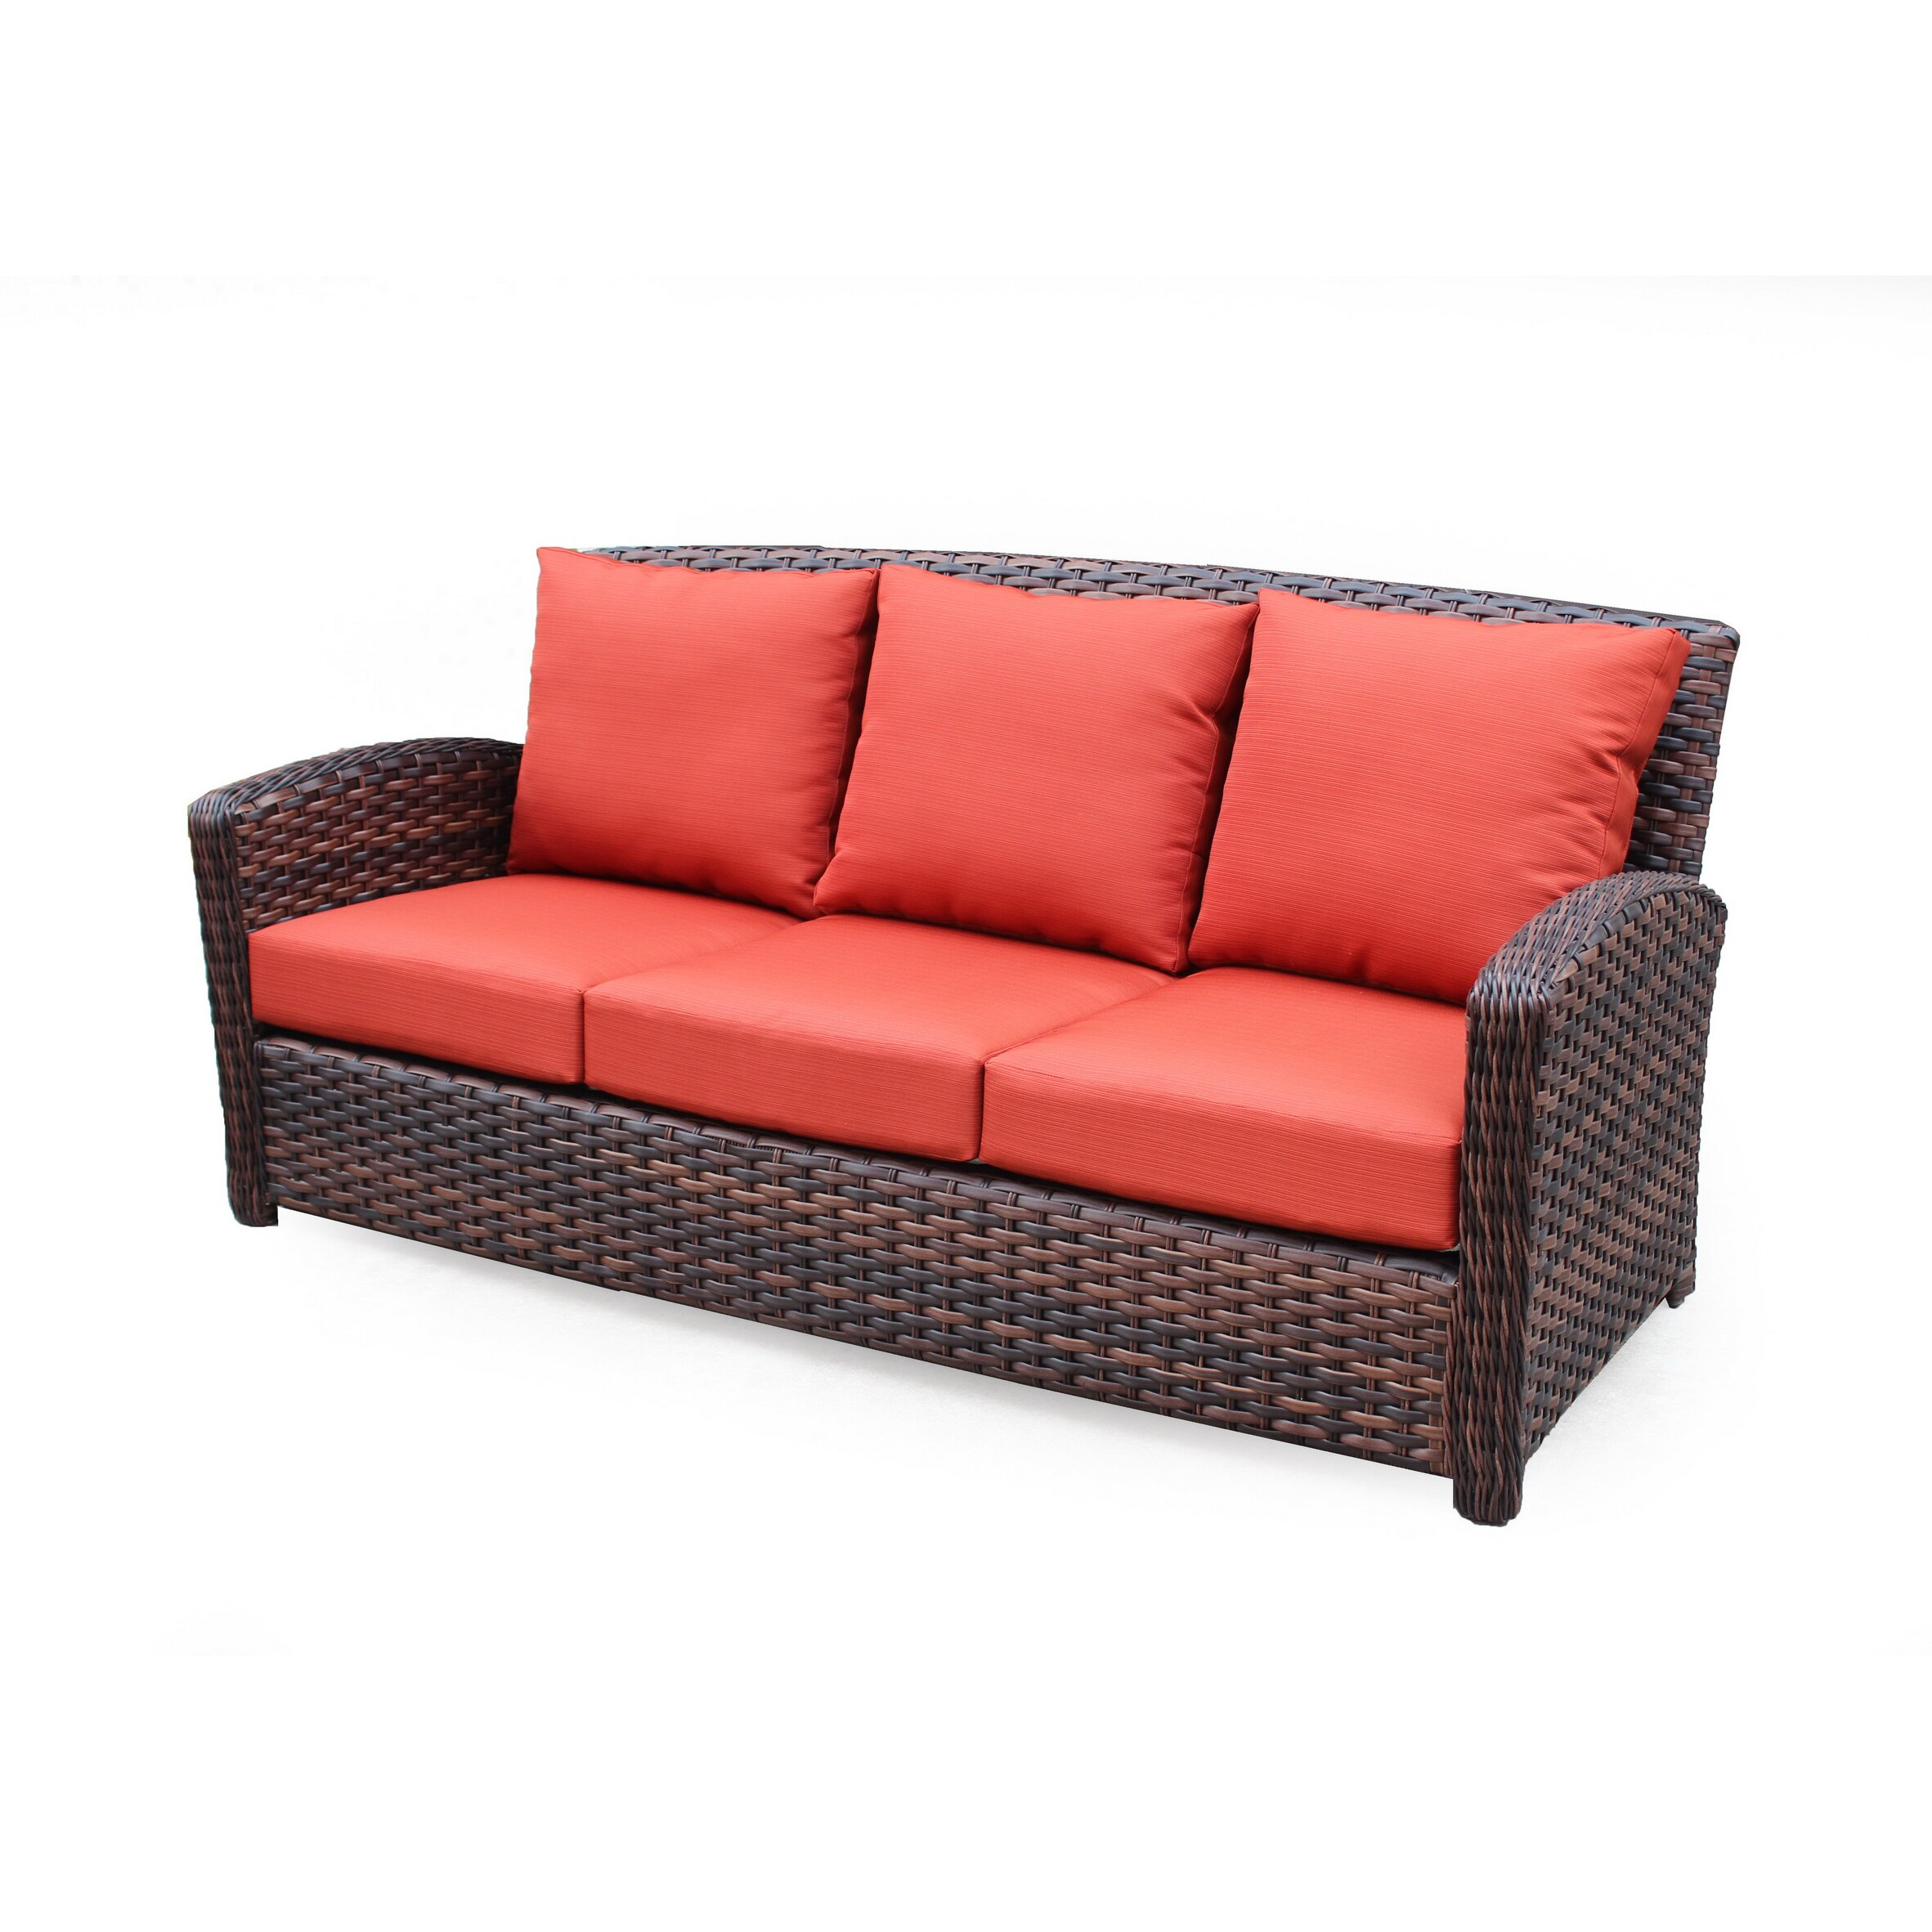 Rattan Sofa Cushions Outdoor Wicker Furniture Cushions